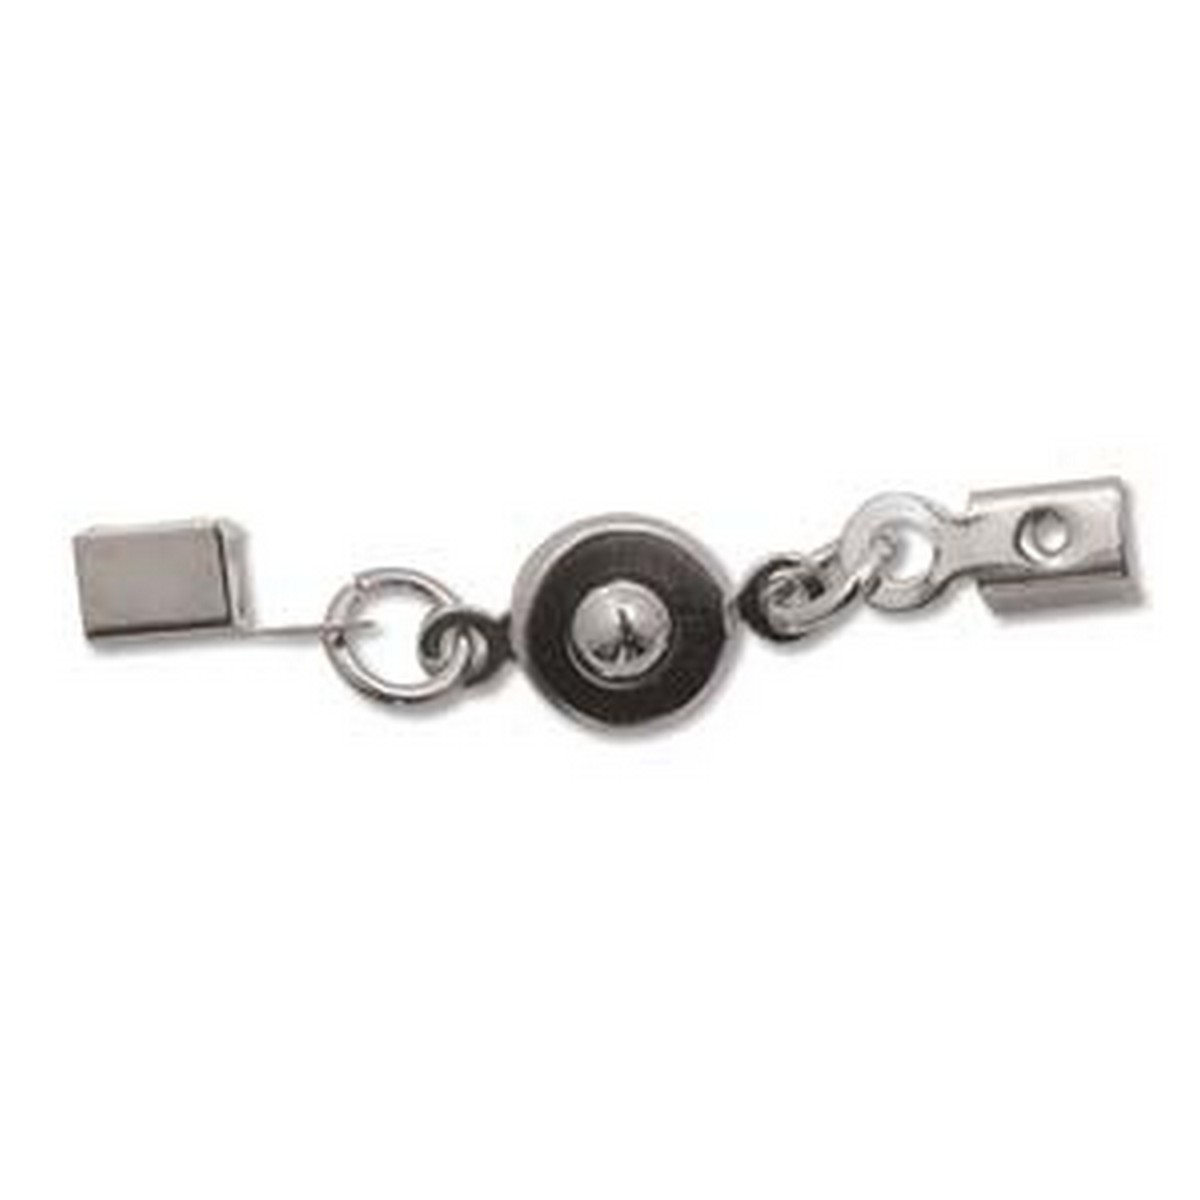 (HCLSP08SP) BALL AND SOCKET CLASP 7MM W/ FOLD OVER SLVR PLT-1/2 GR